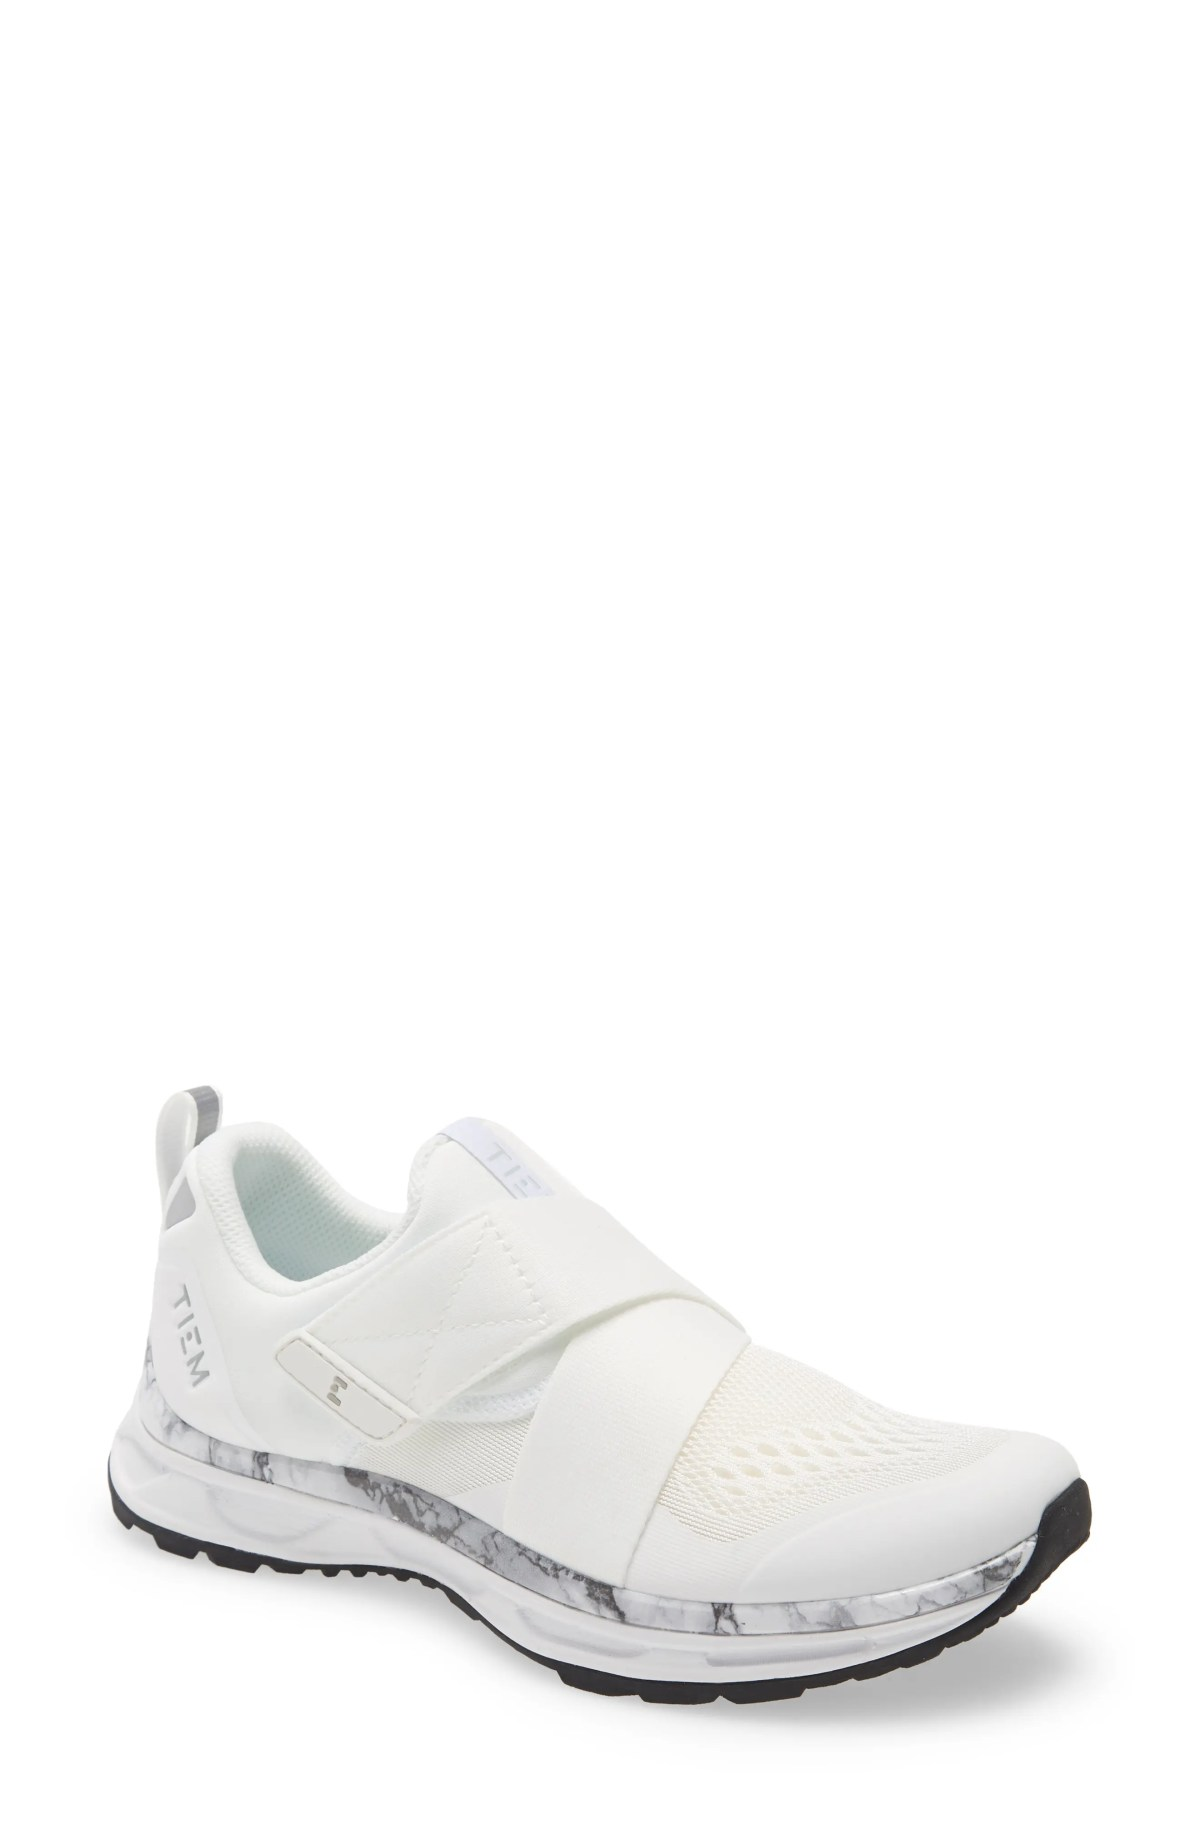 TIEM Slipstream Cycling Sneaker, Main, color, WHITE MARBLE